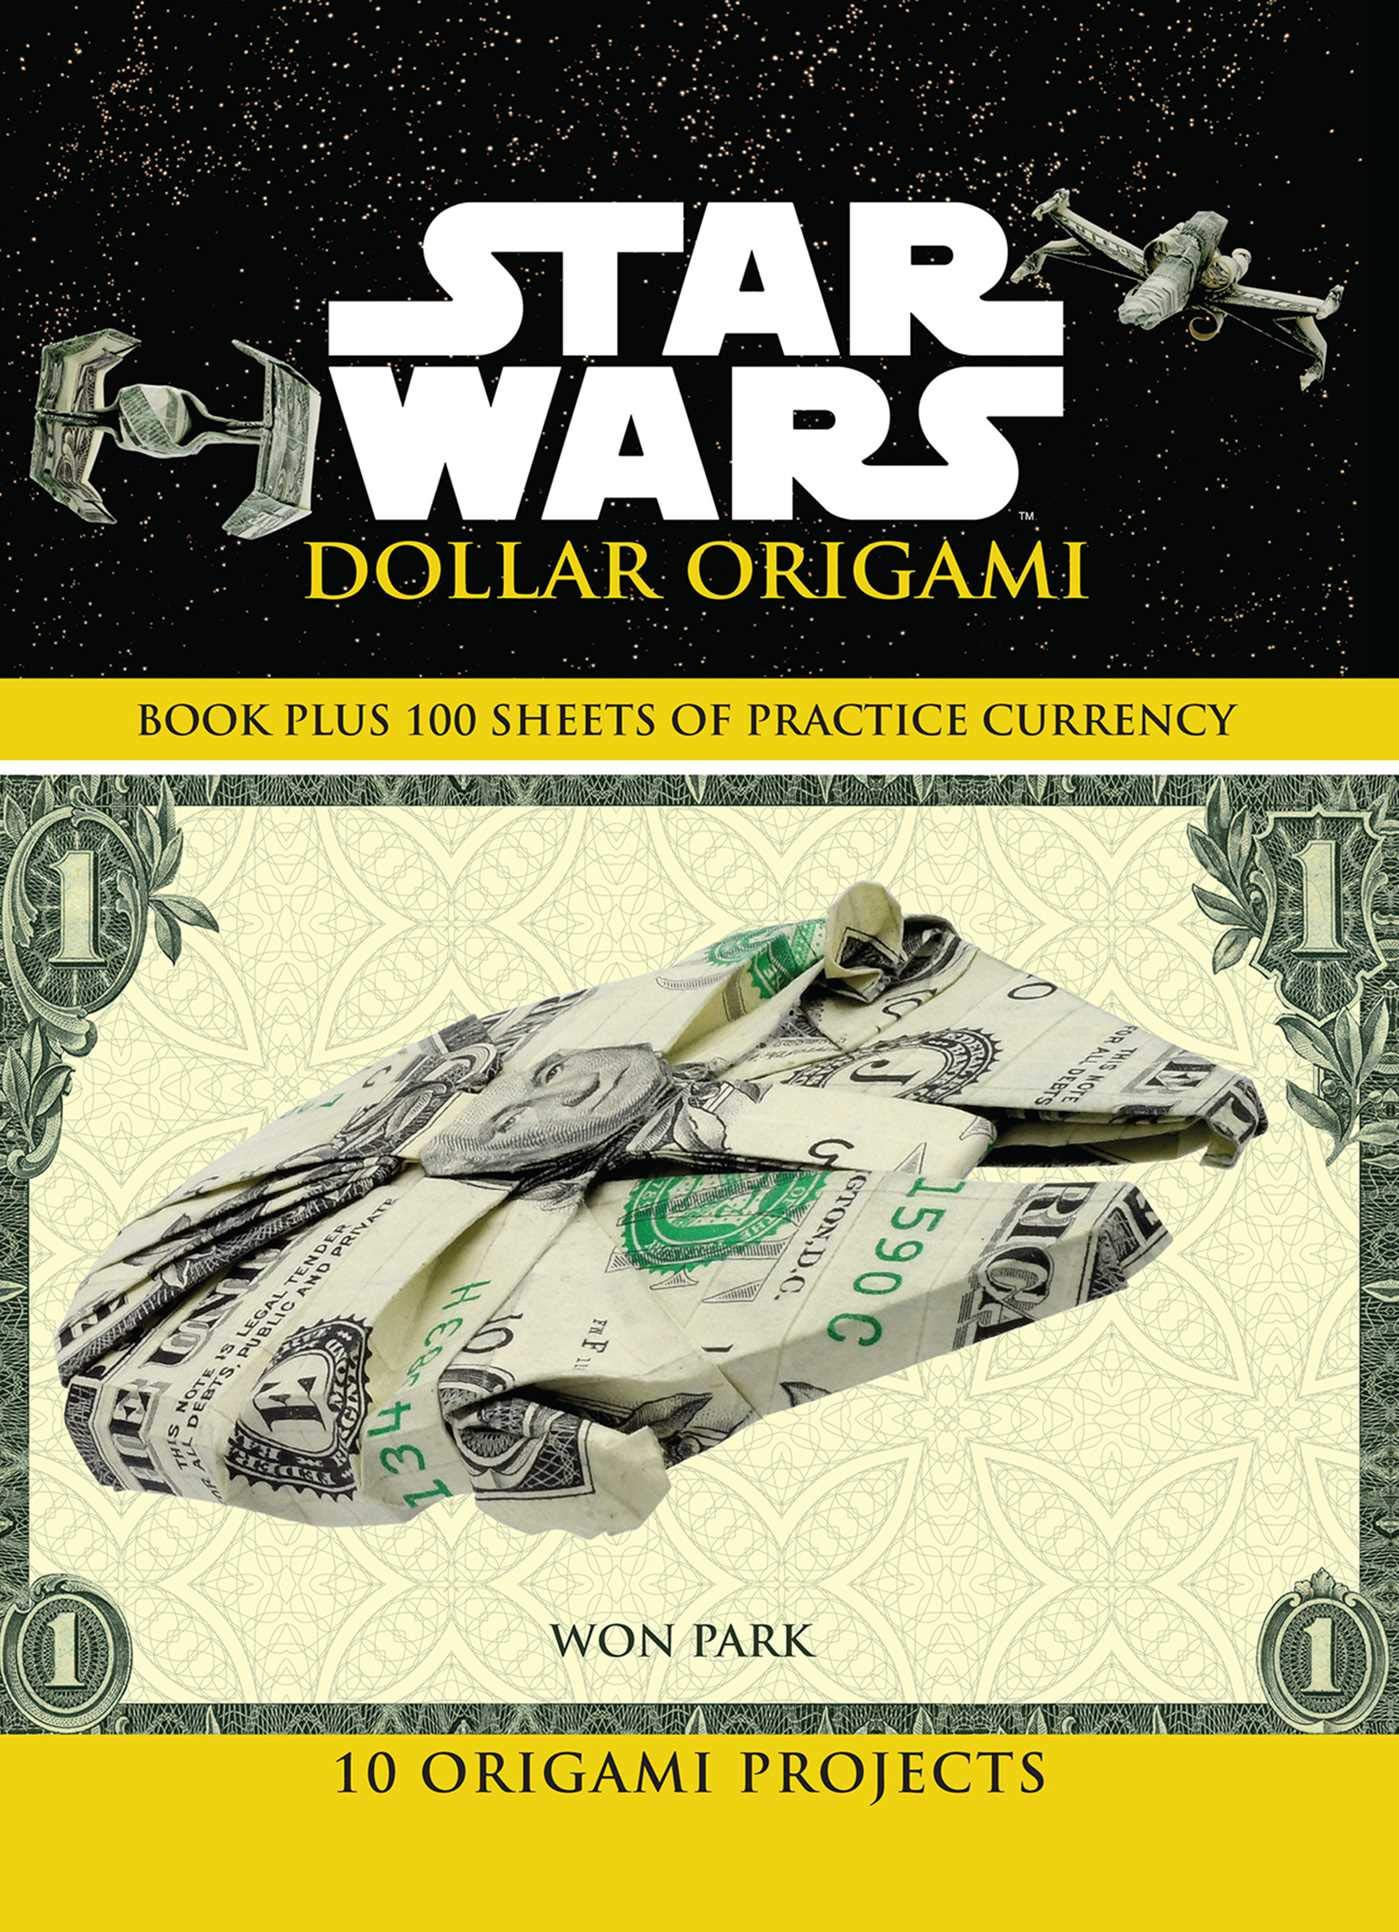 Star Wars Dollar Origami (22.10.2019)